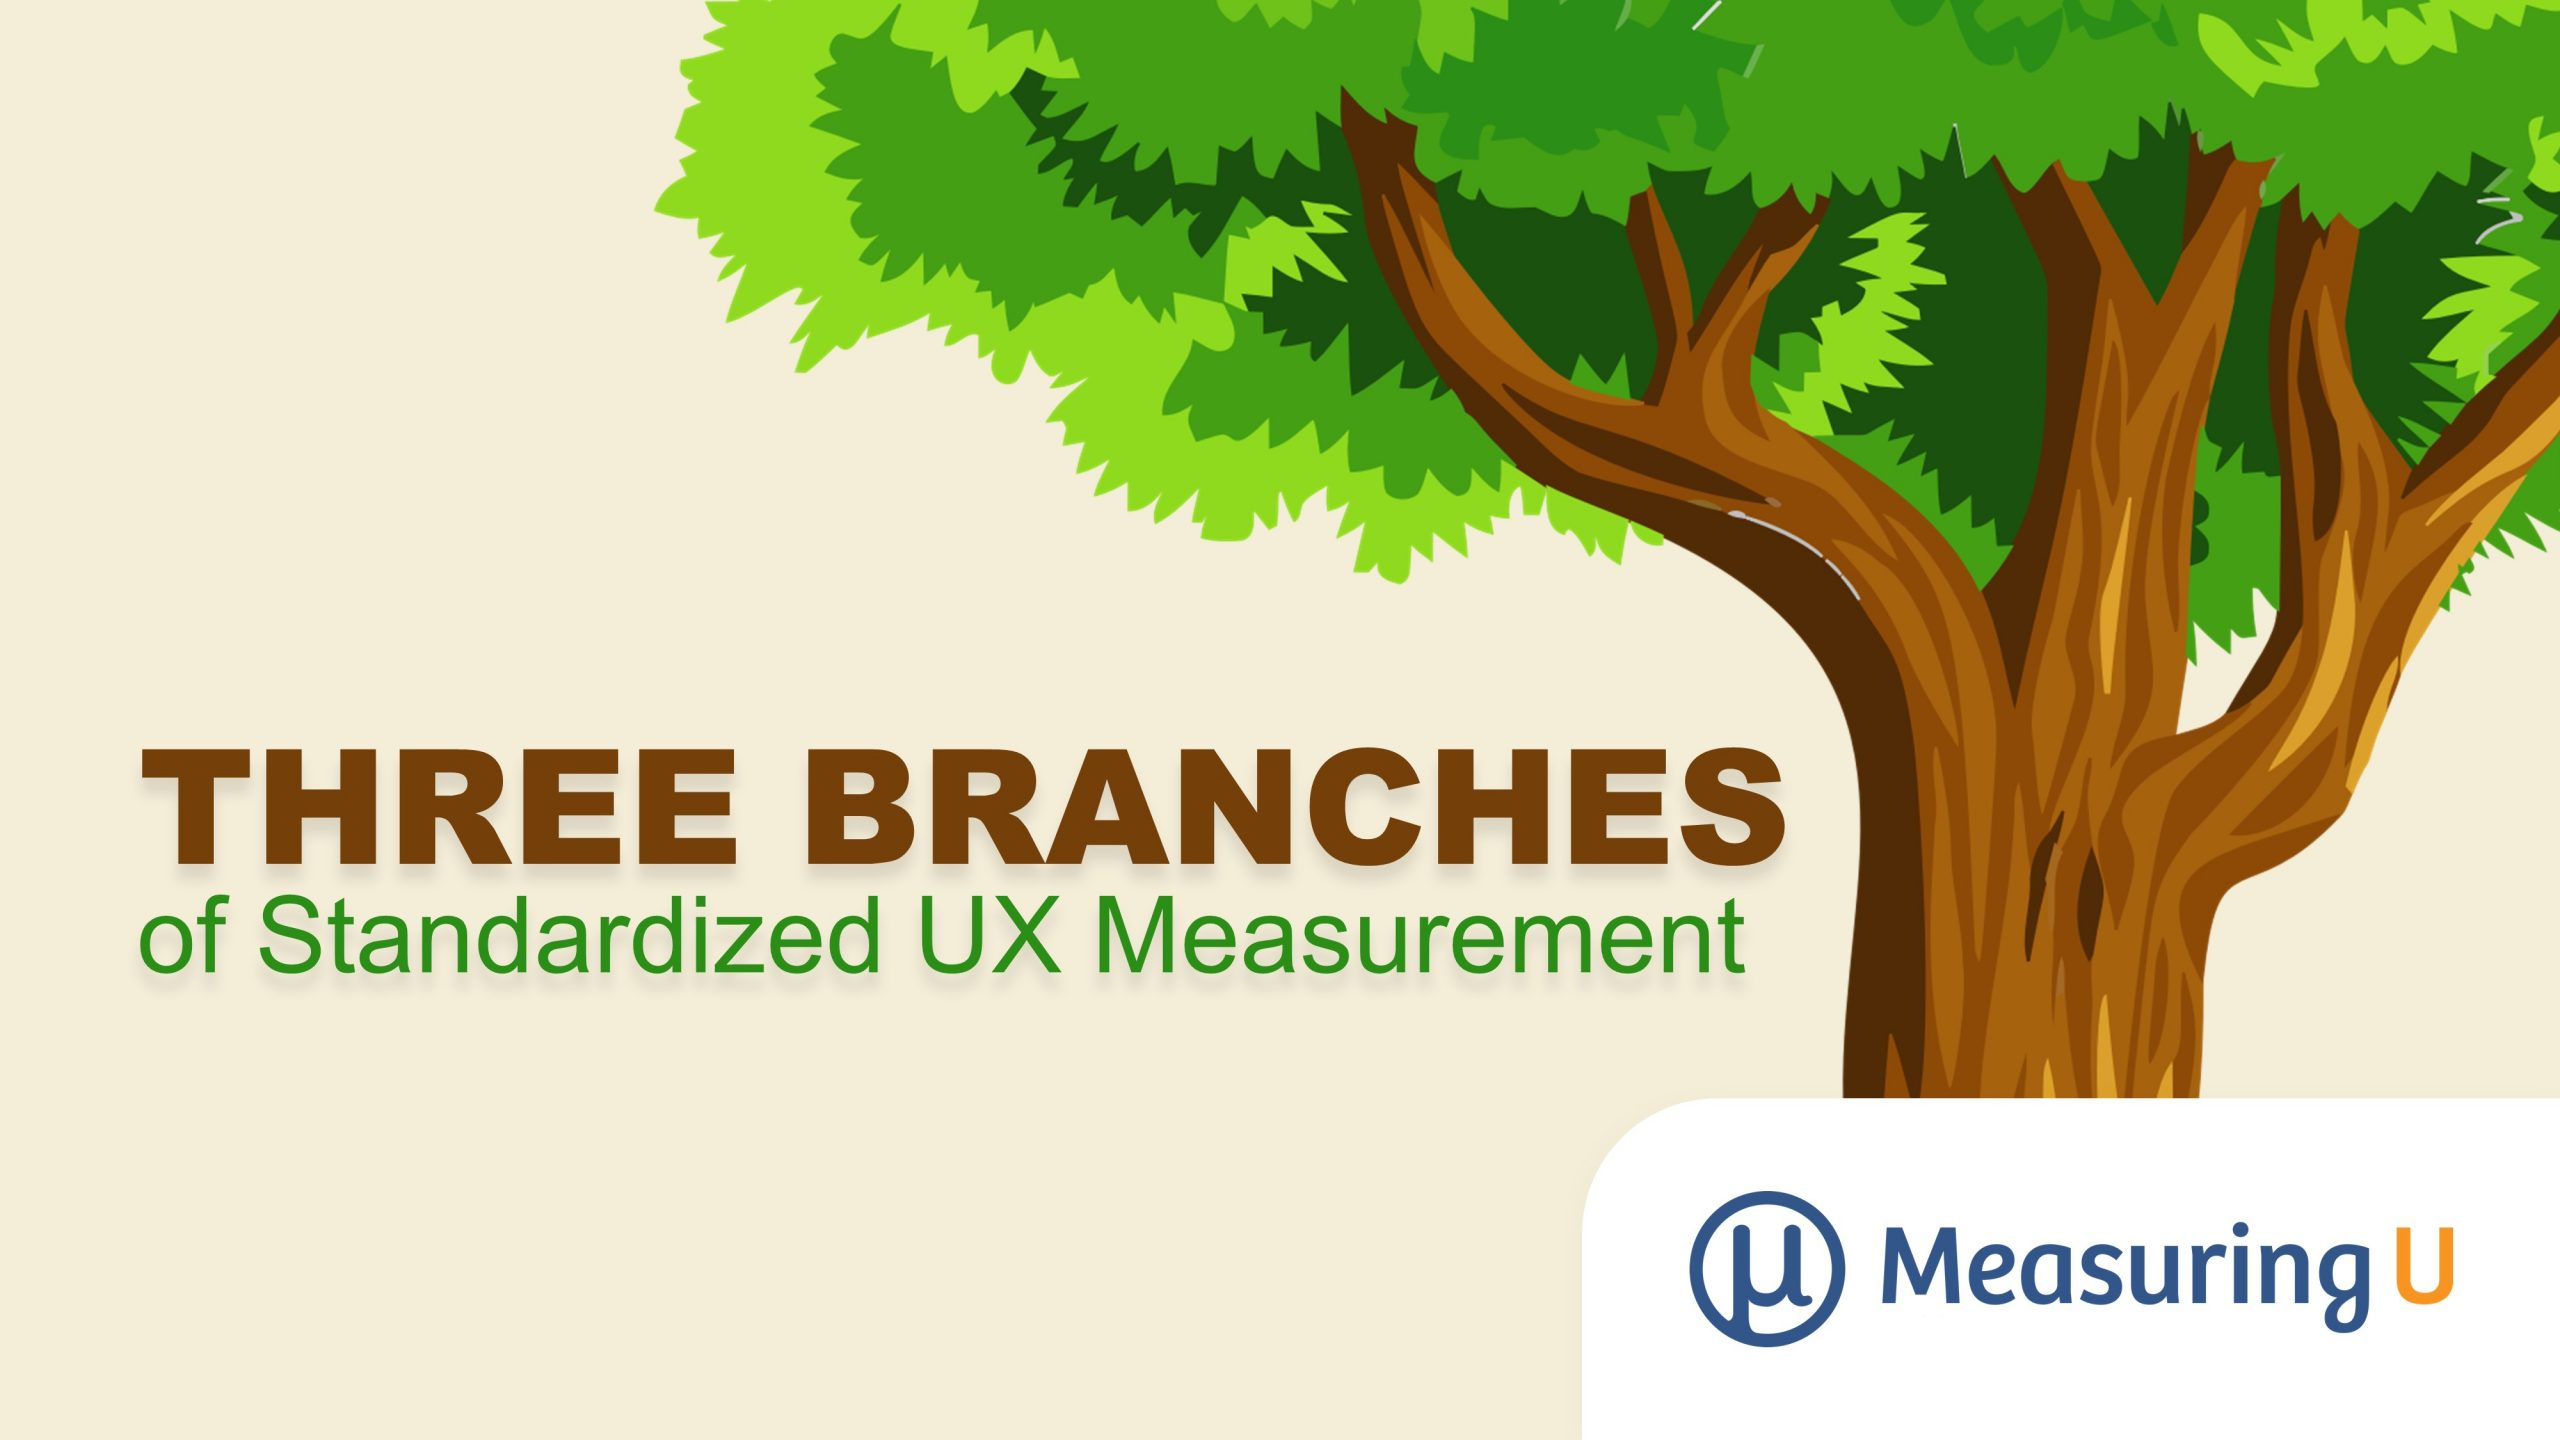 Three Branches of Standardized UX Measurement